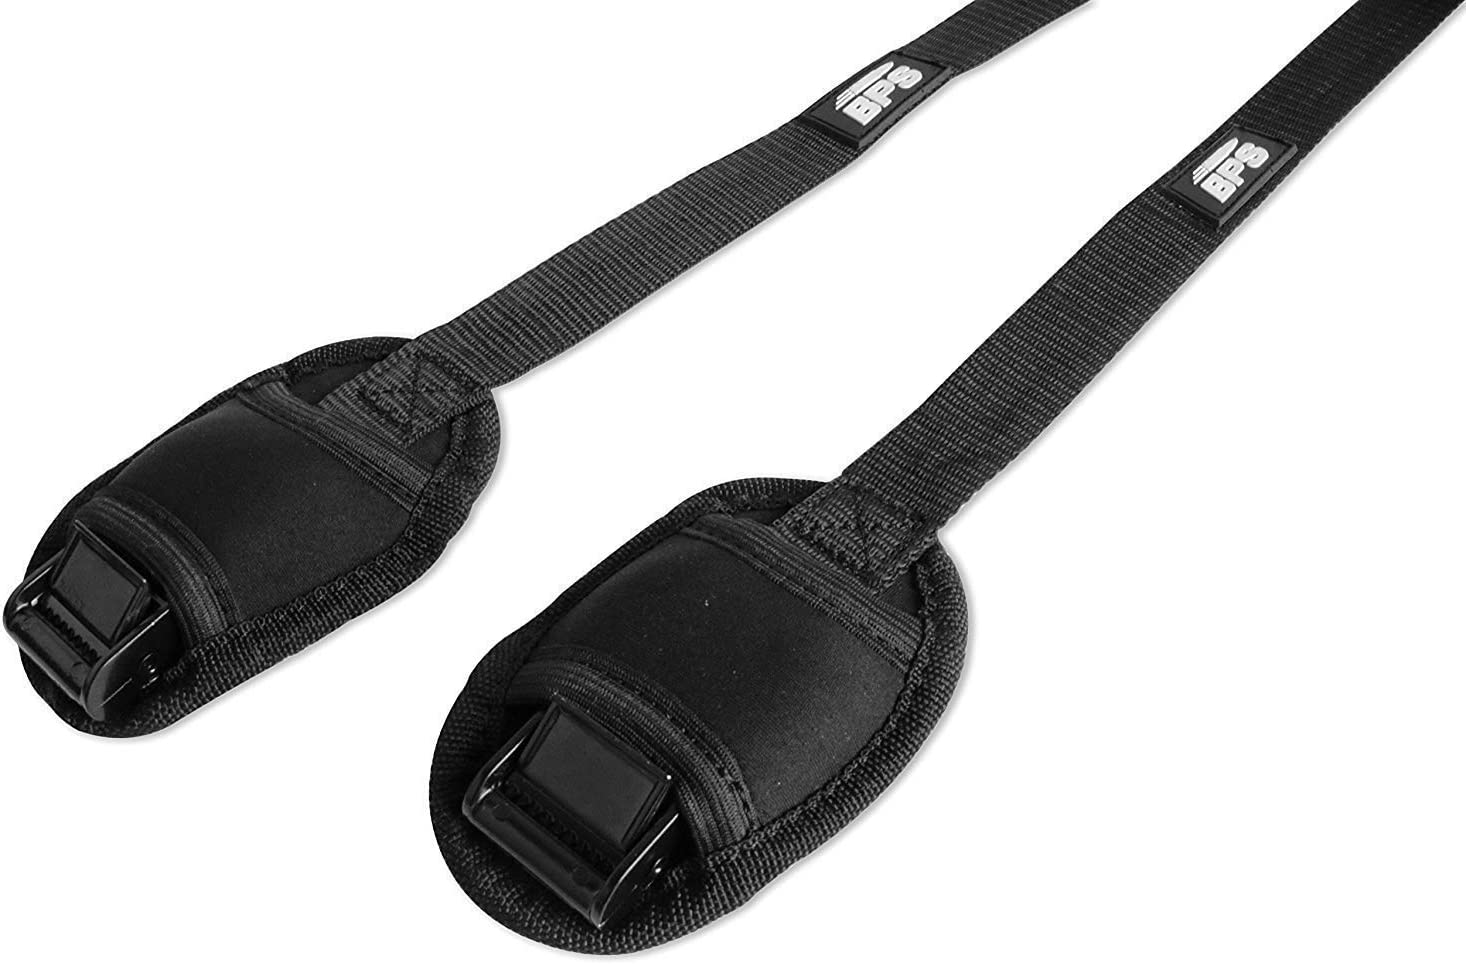 BPS No Scratch Premium Surf or SUP Tie Down Straps for Surfboards Kayaks and Canoes 2 Liter Dry Bag or Draw String Carry Bag Paddle Boards 1 Pair - Choose Size and Storage